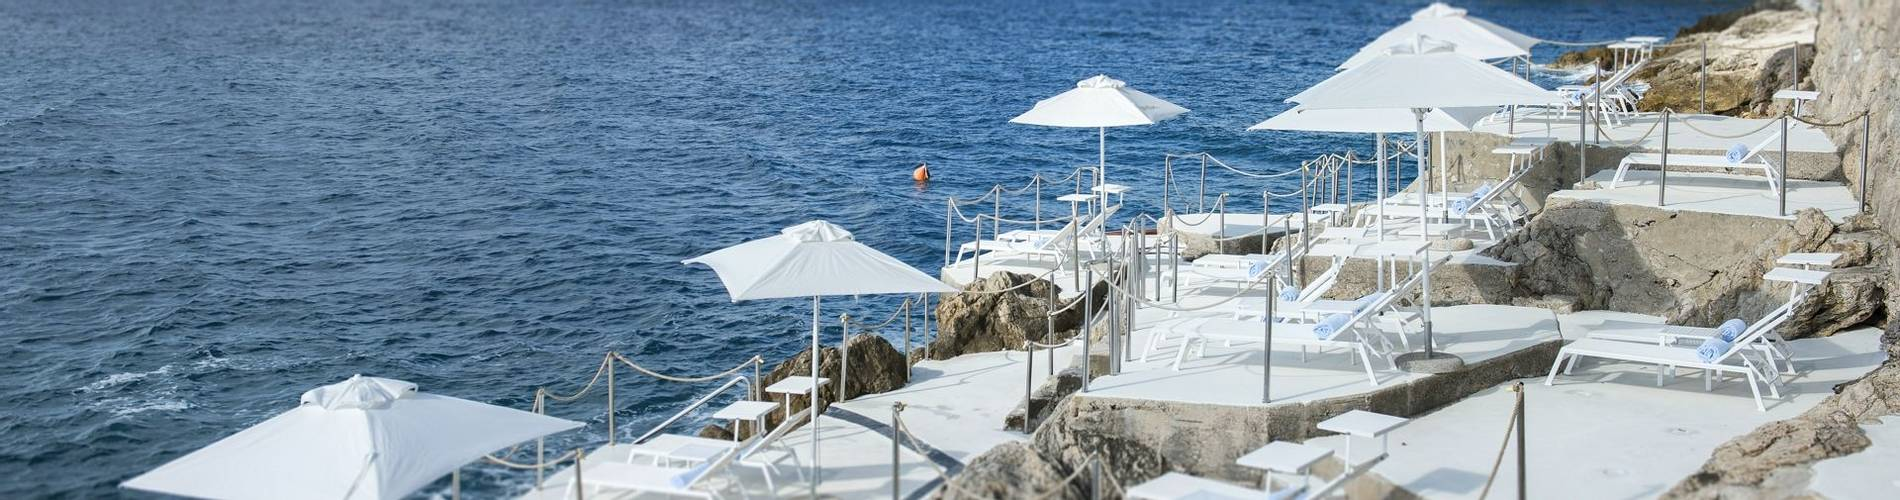 Sunloungers with view onto the bay Hotel Villa Dubrovnik.jpg